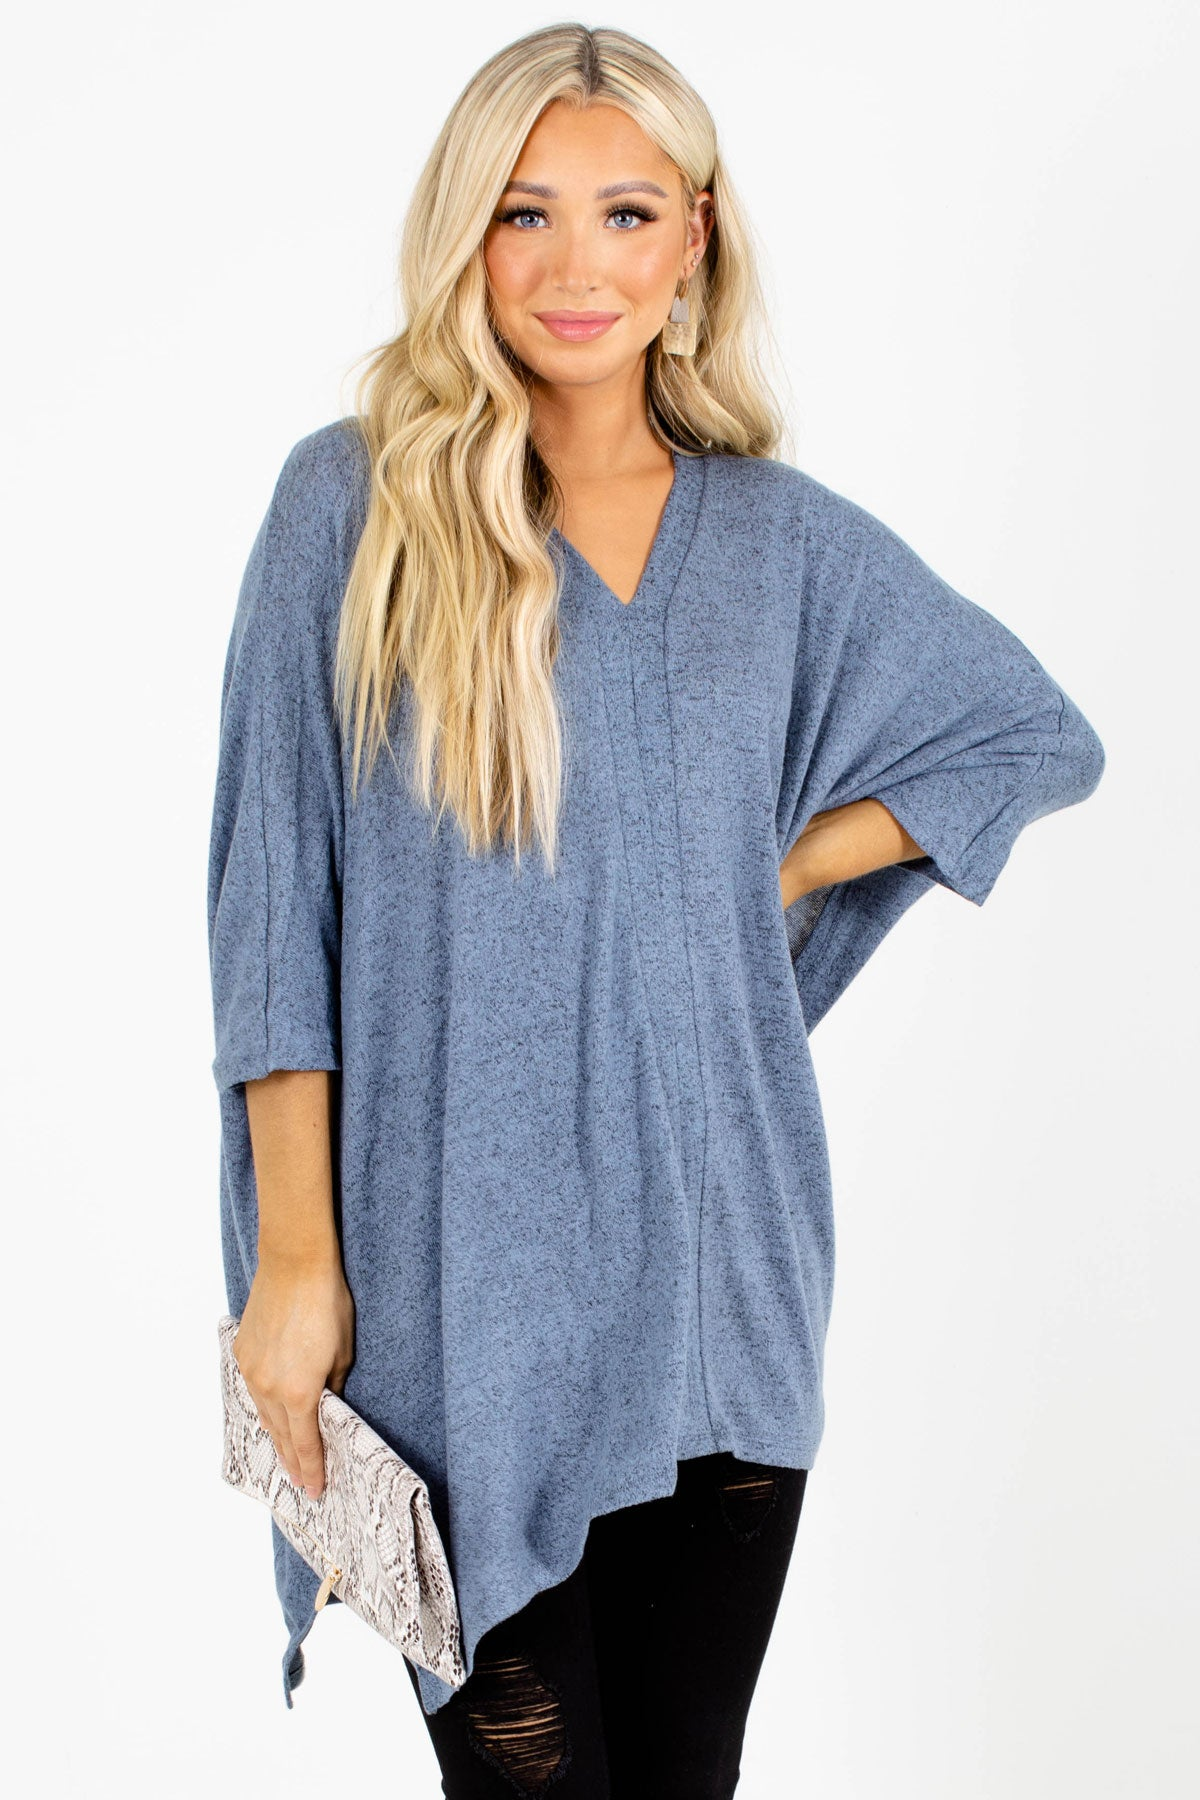 Blue V-Neckline Boutique Tops for Women